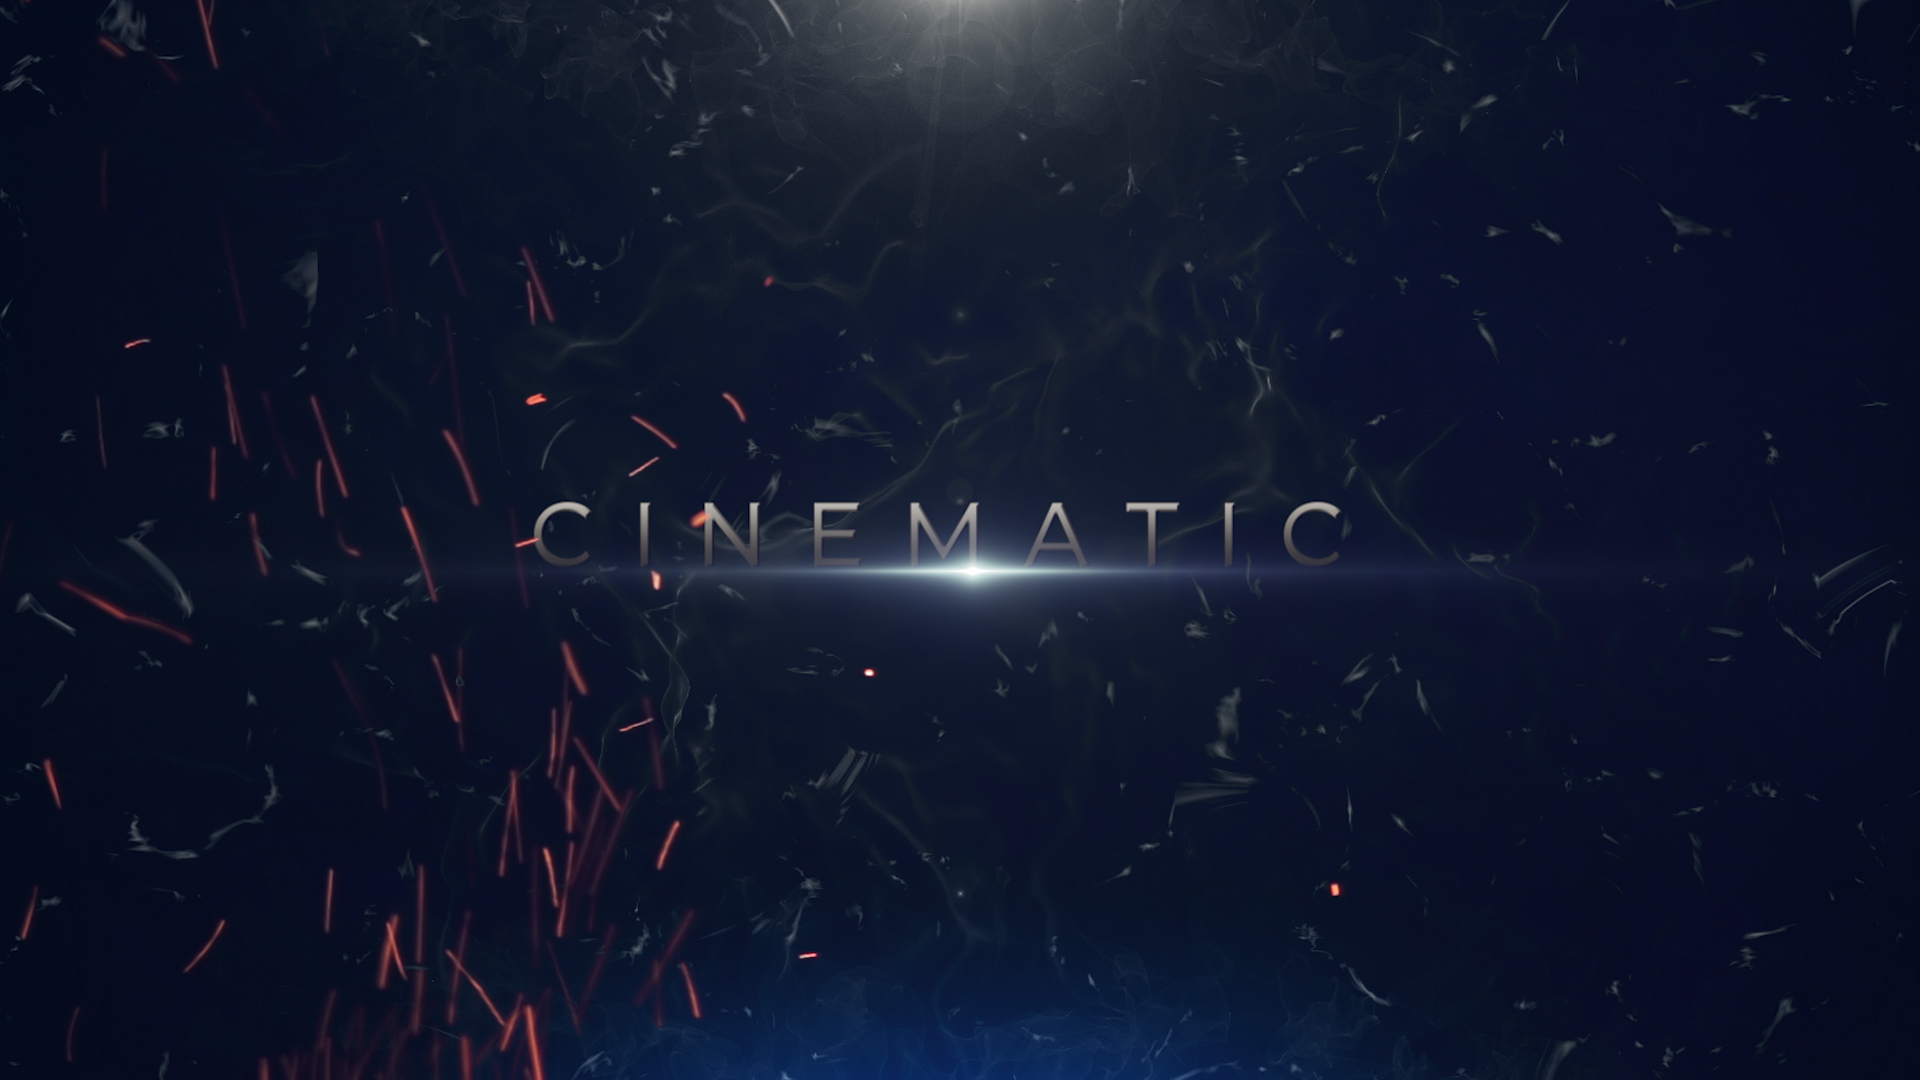 cinematic trailer with dust and flares